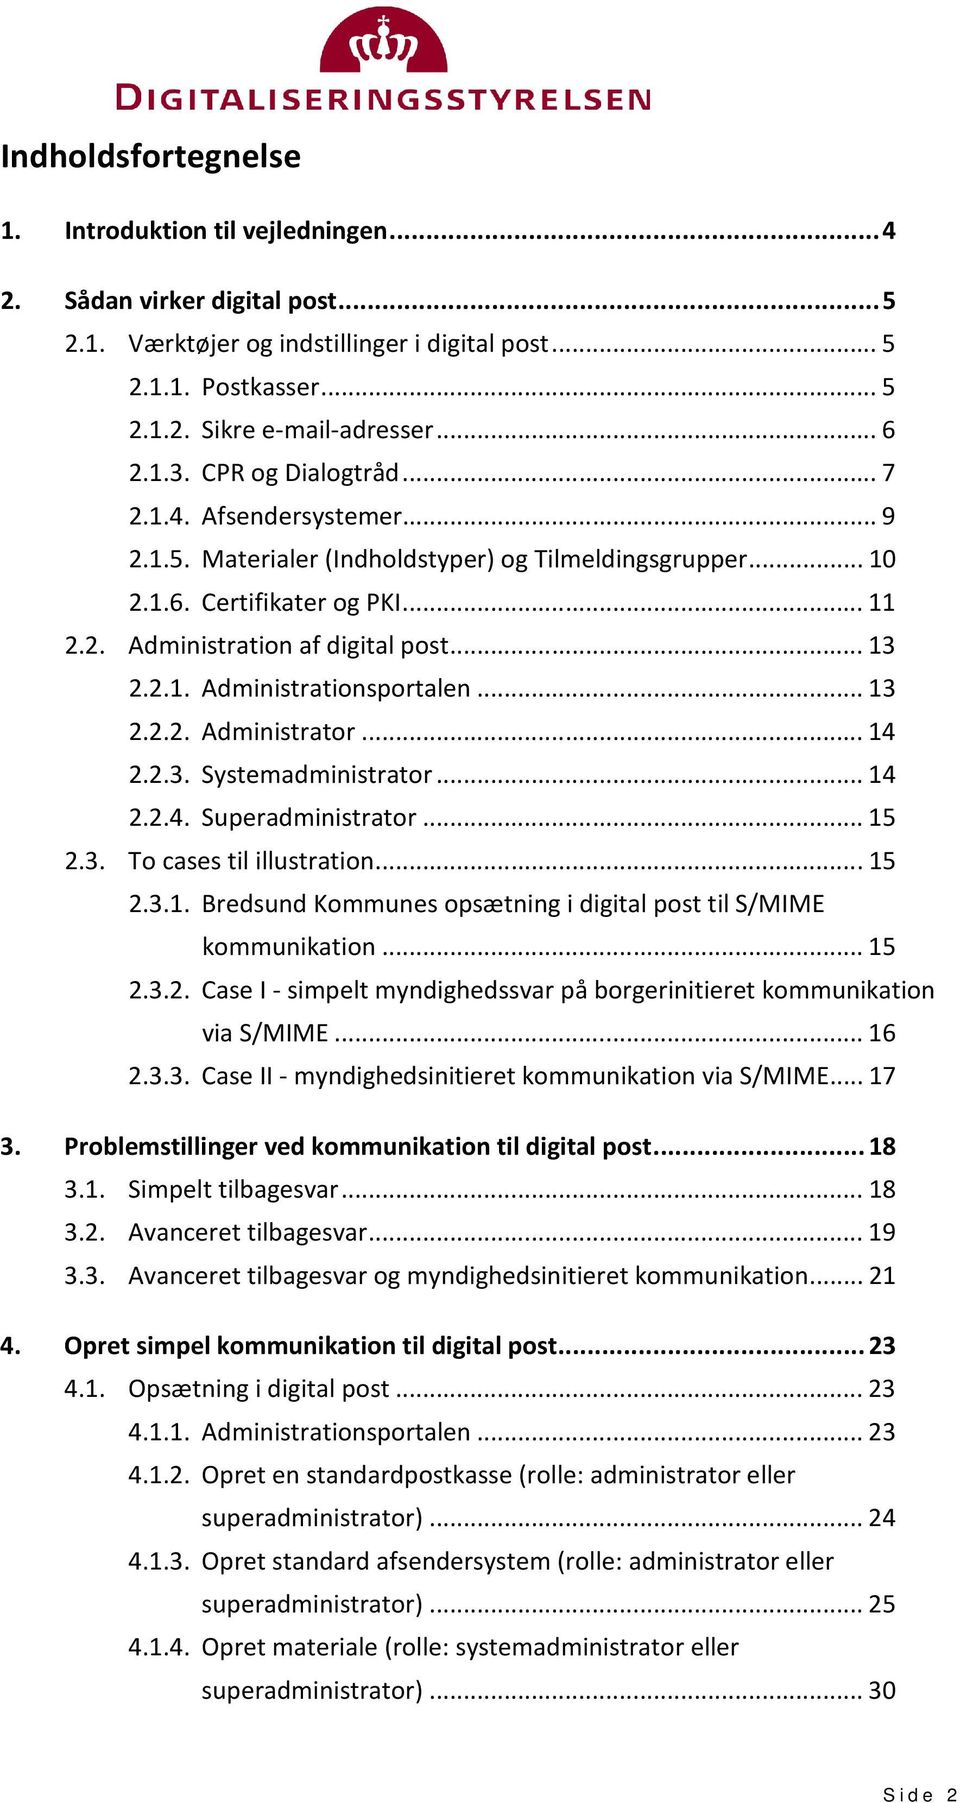 .. 13 2.2.1. Administrationsportalen... 13 2.2.2. Administrator... 14 2.2.3. Systemadministrator... 14 2.2.4. Superadministrator... 15 2.3. To cases til illustration... 15 2.3.1. Bredsund Kommunes opsætning i digital post til S/MIME kommunikation.